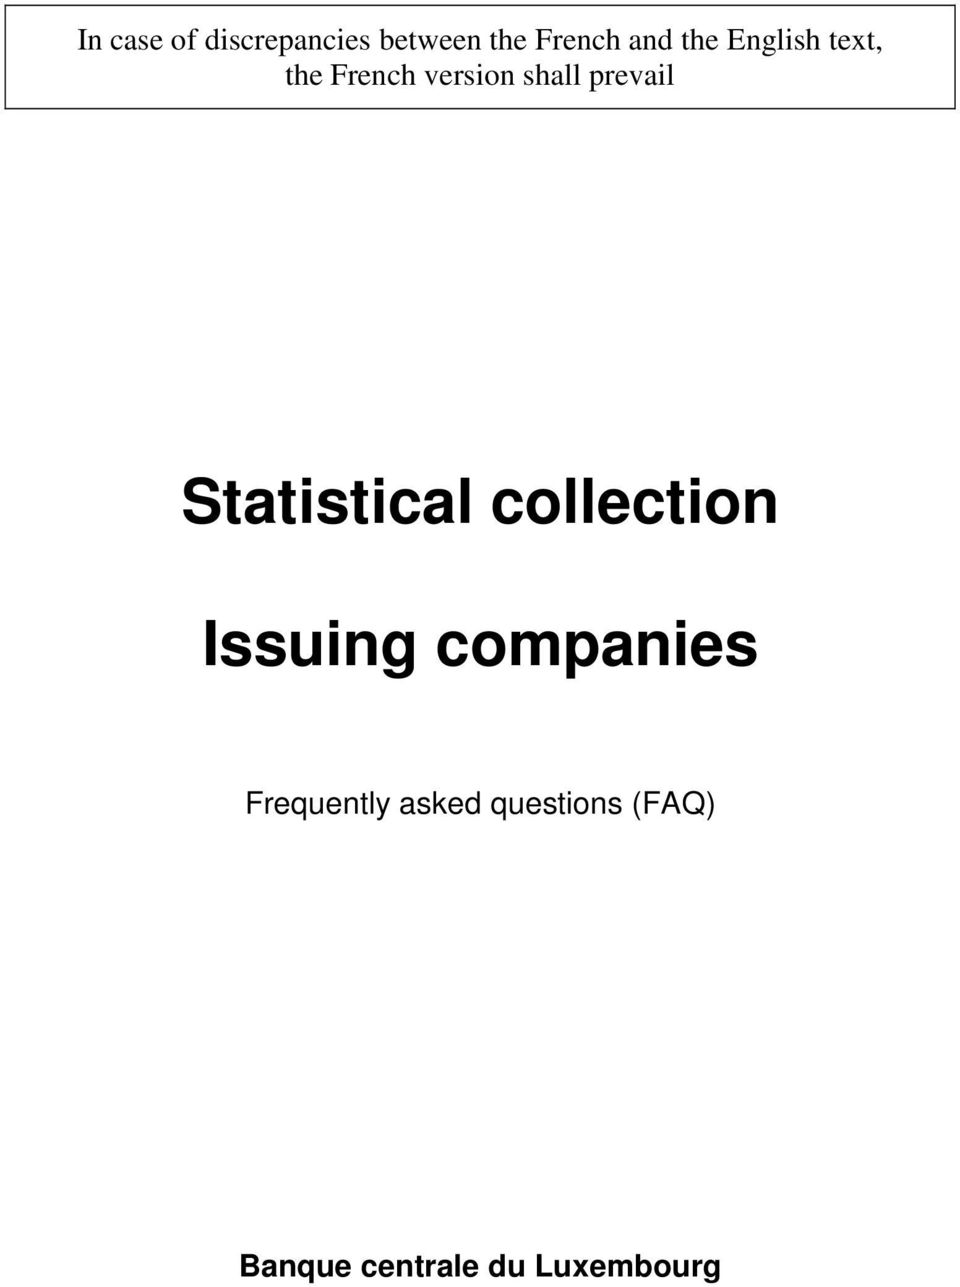 Statistical collection Issuing companies